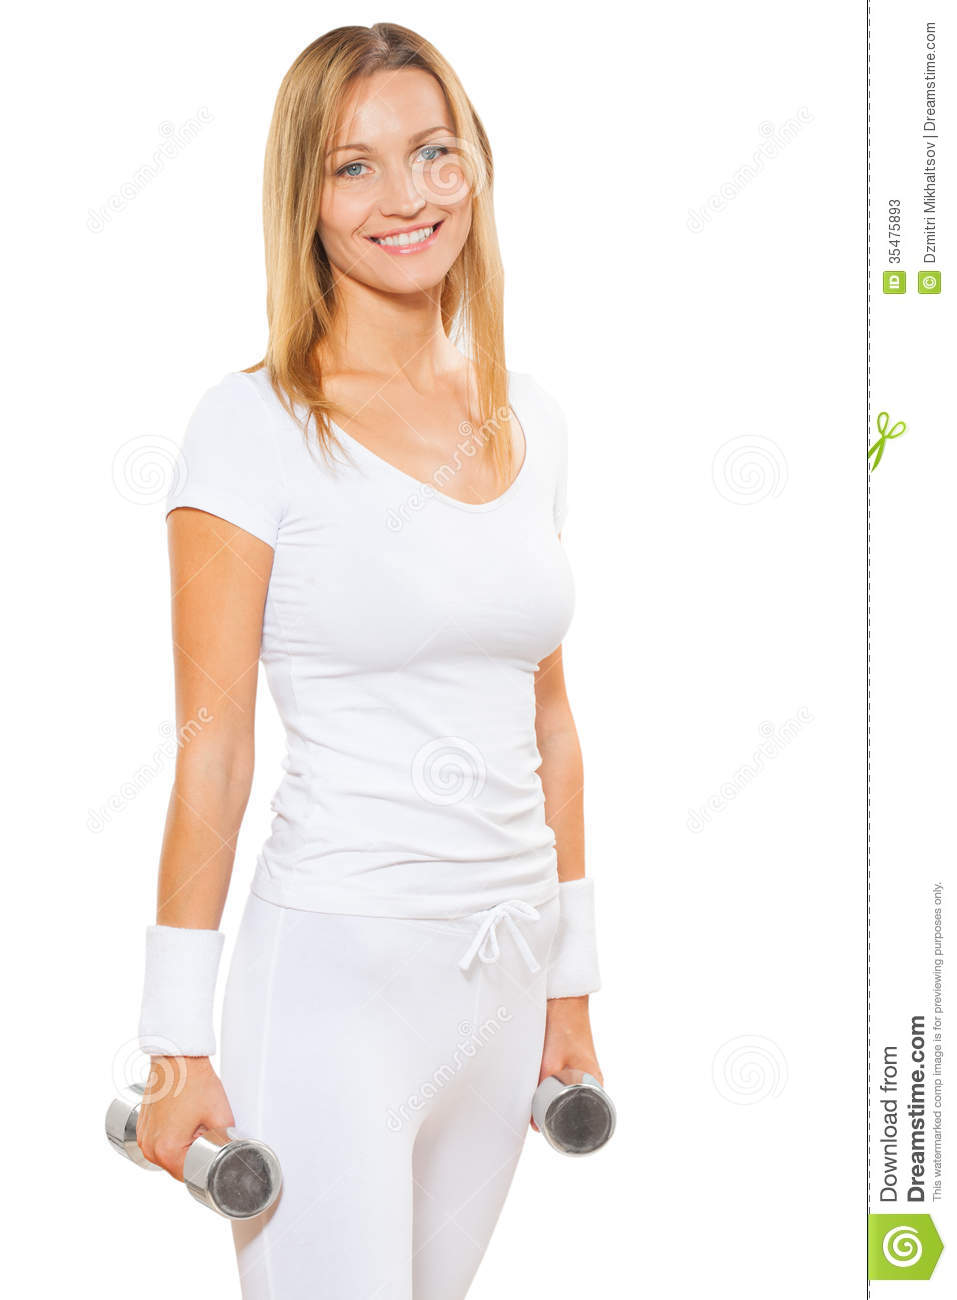 Fitness lady with dumbbels stock photos image 35475893 for Lady fitness